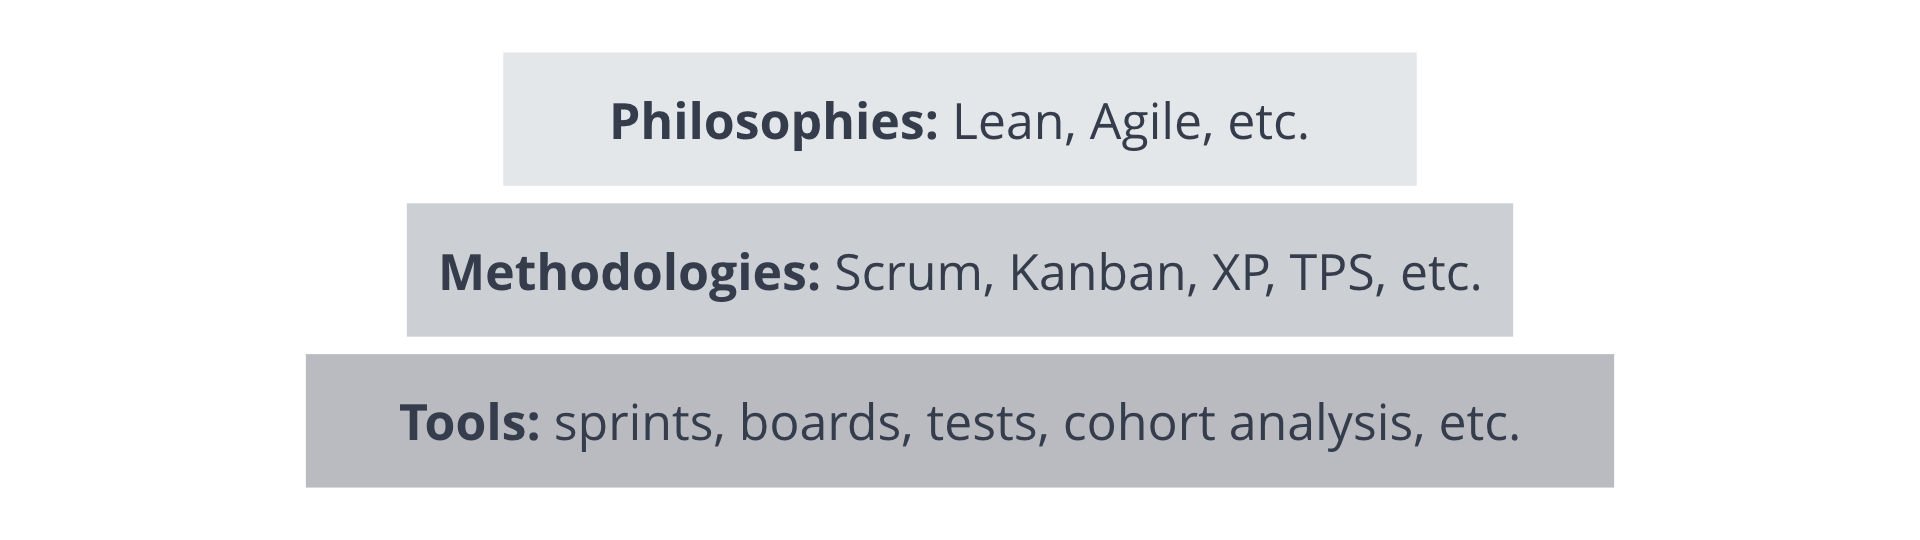 Difference between Agile and Leand, Scrum and Kanban